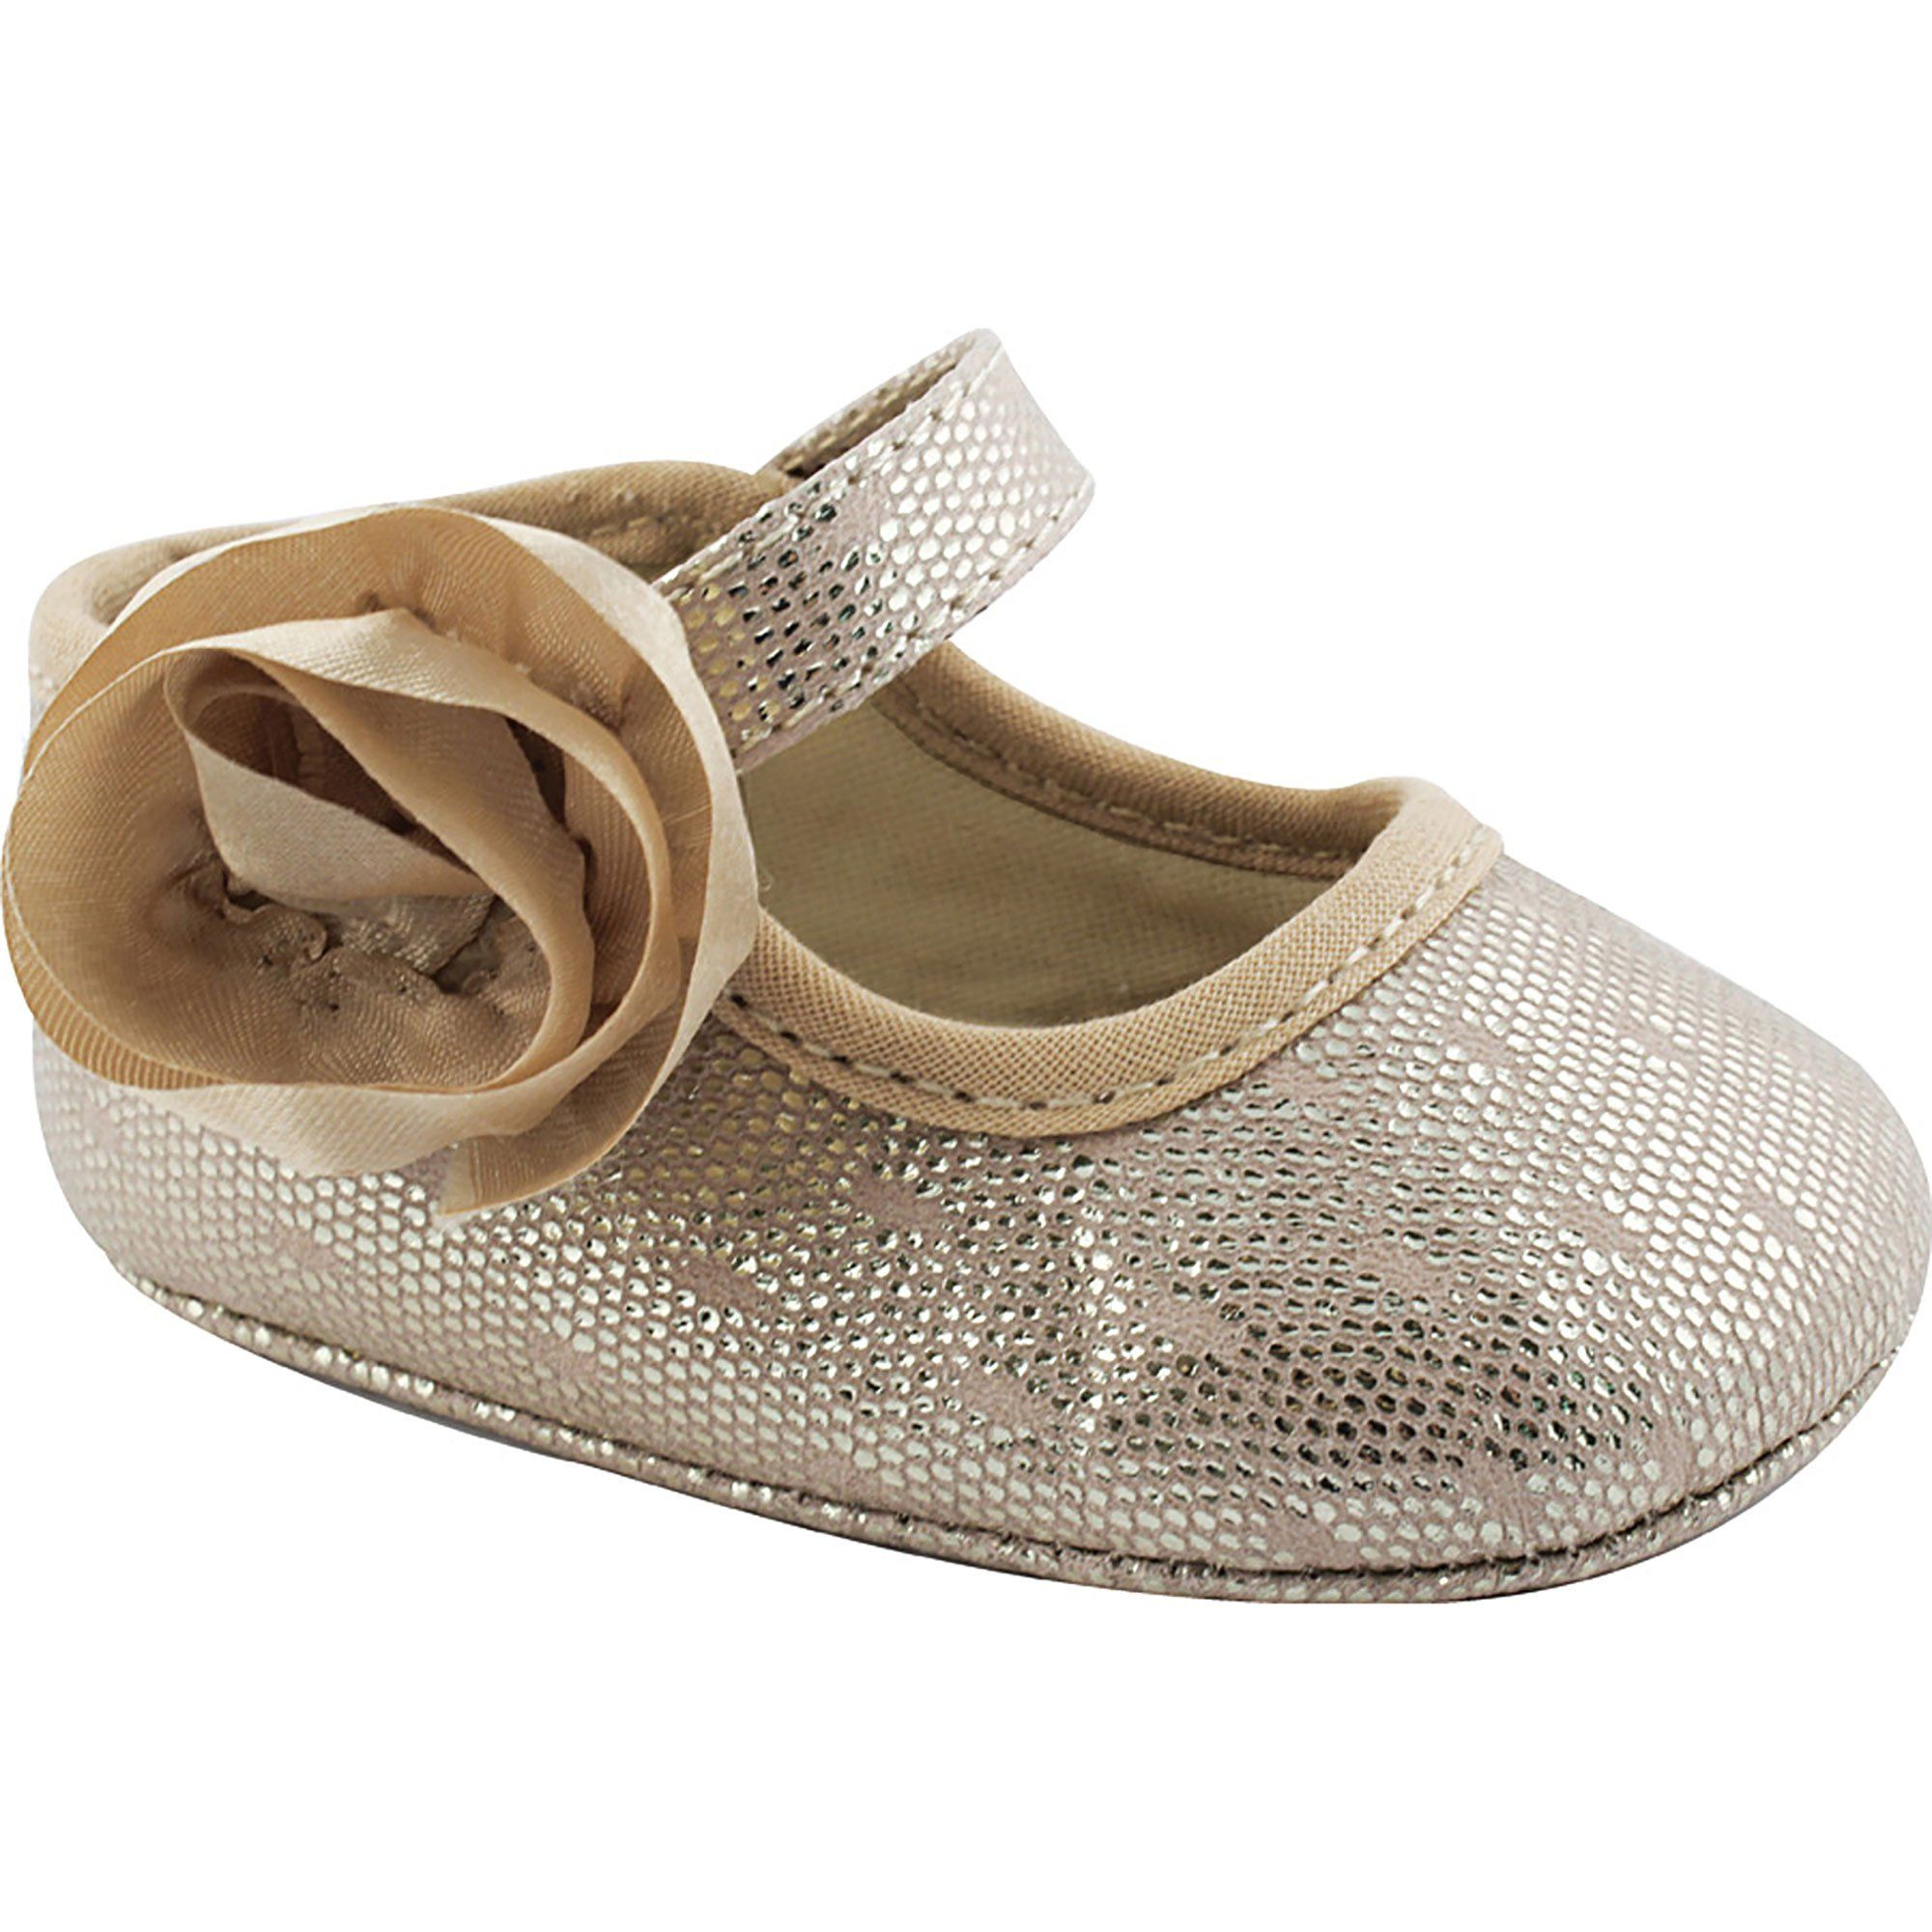 Wee Kids Metallic Mary Jane Baby Girl Shoes With Flower Infant Crib